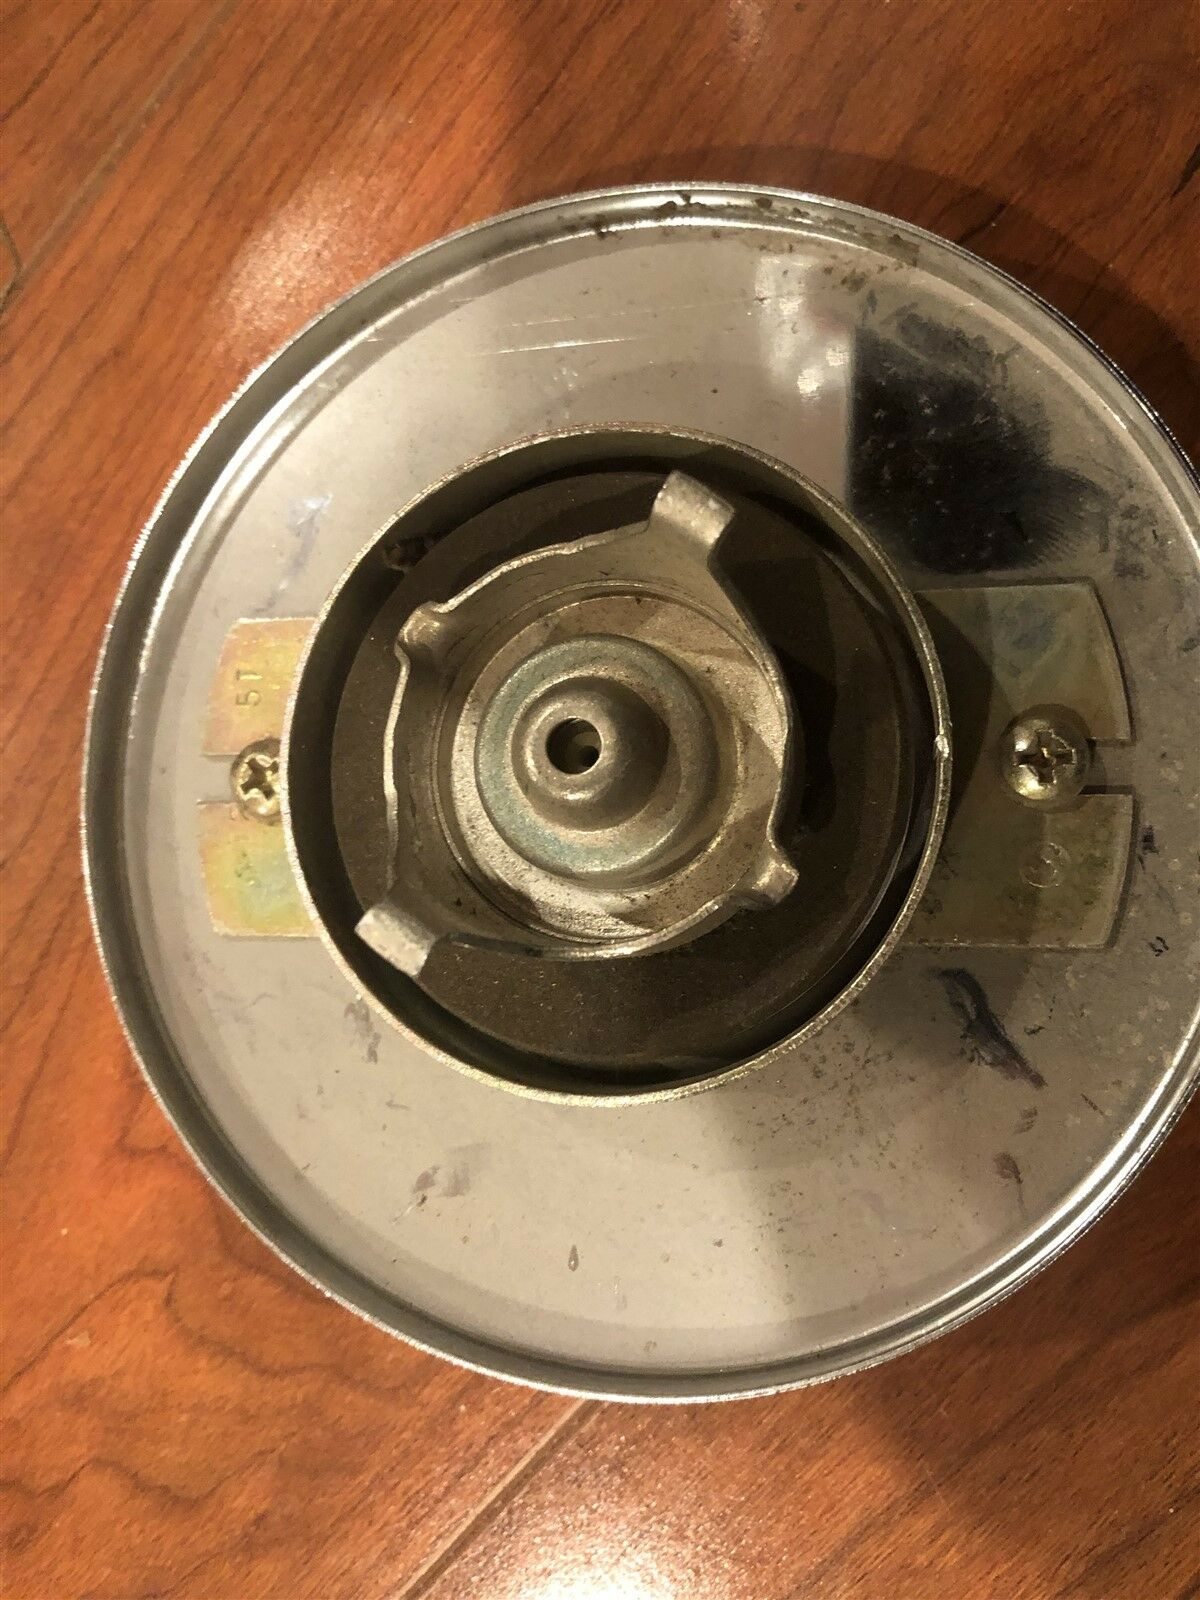 Used Chrysler Lebaron Auto Parts And Components For Sale 1991 Wiring Diagram Nos 1977 1979 Dodge Diplomat Aspen Plymouth Volare Gas Cap